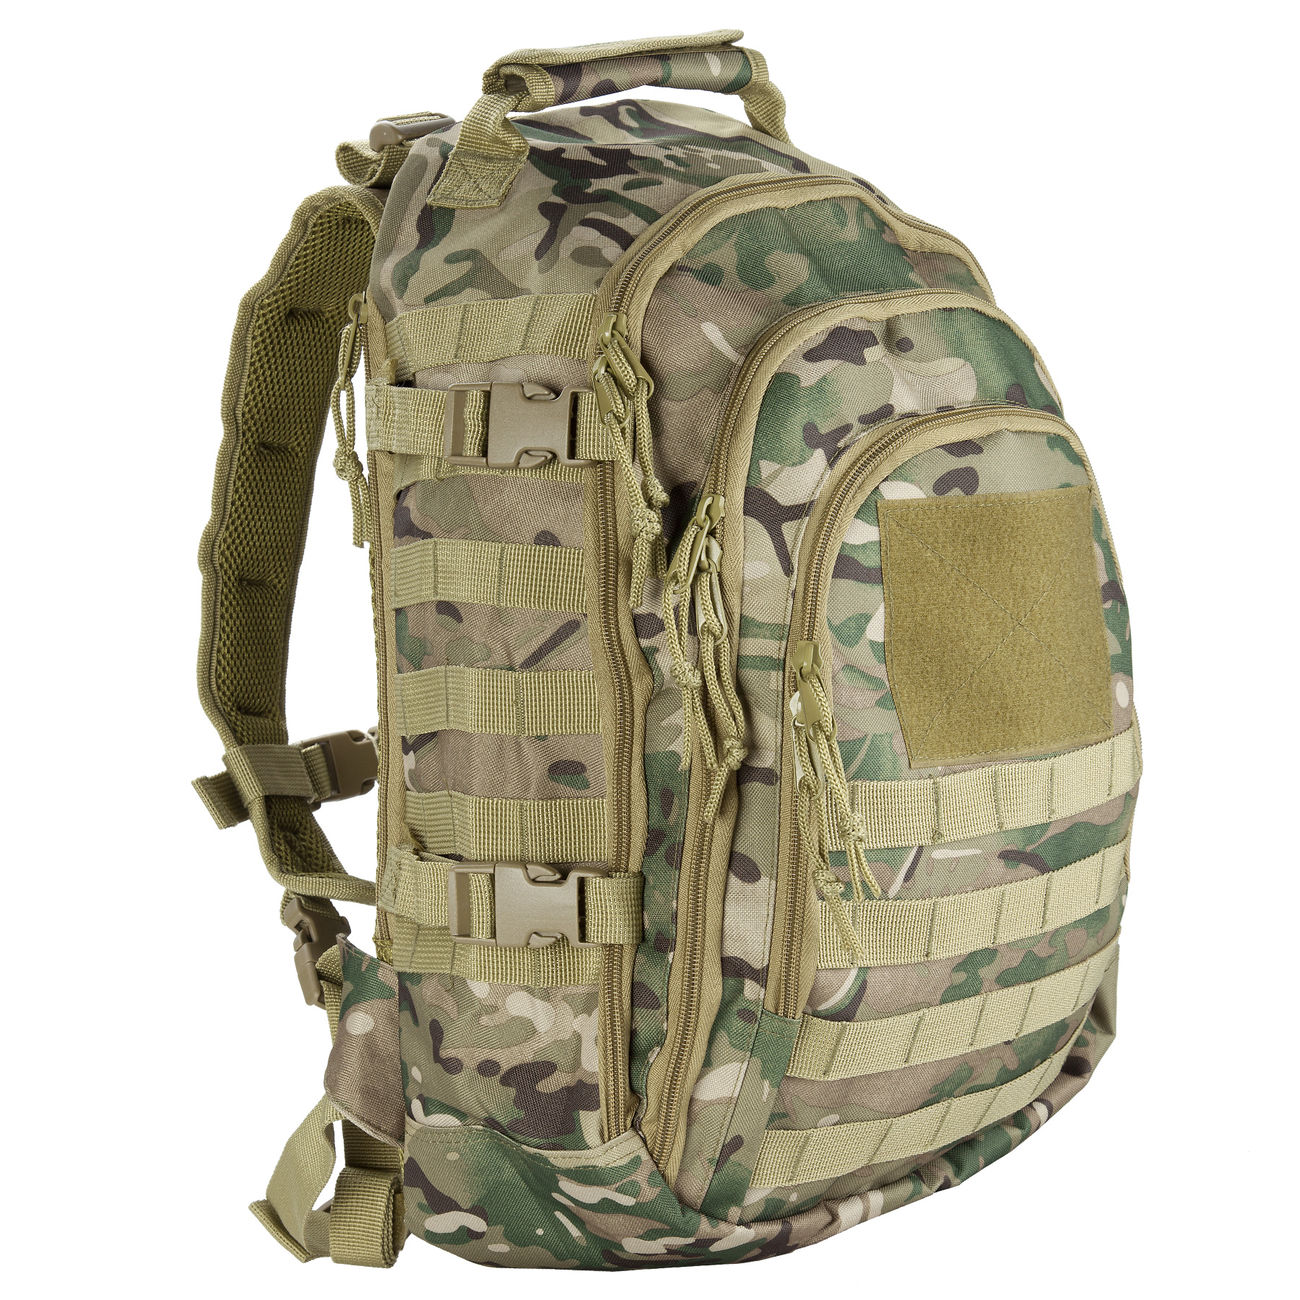 101 INC. Rucksack Mission Pack DTC multi 0